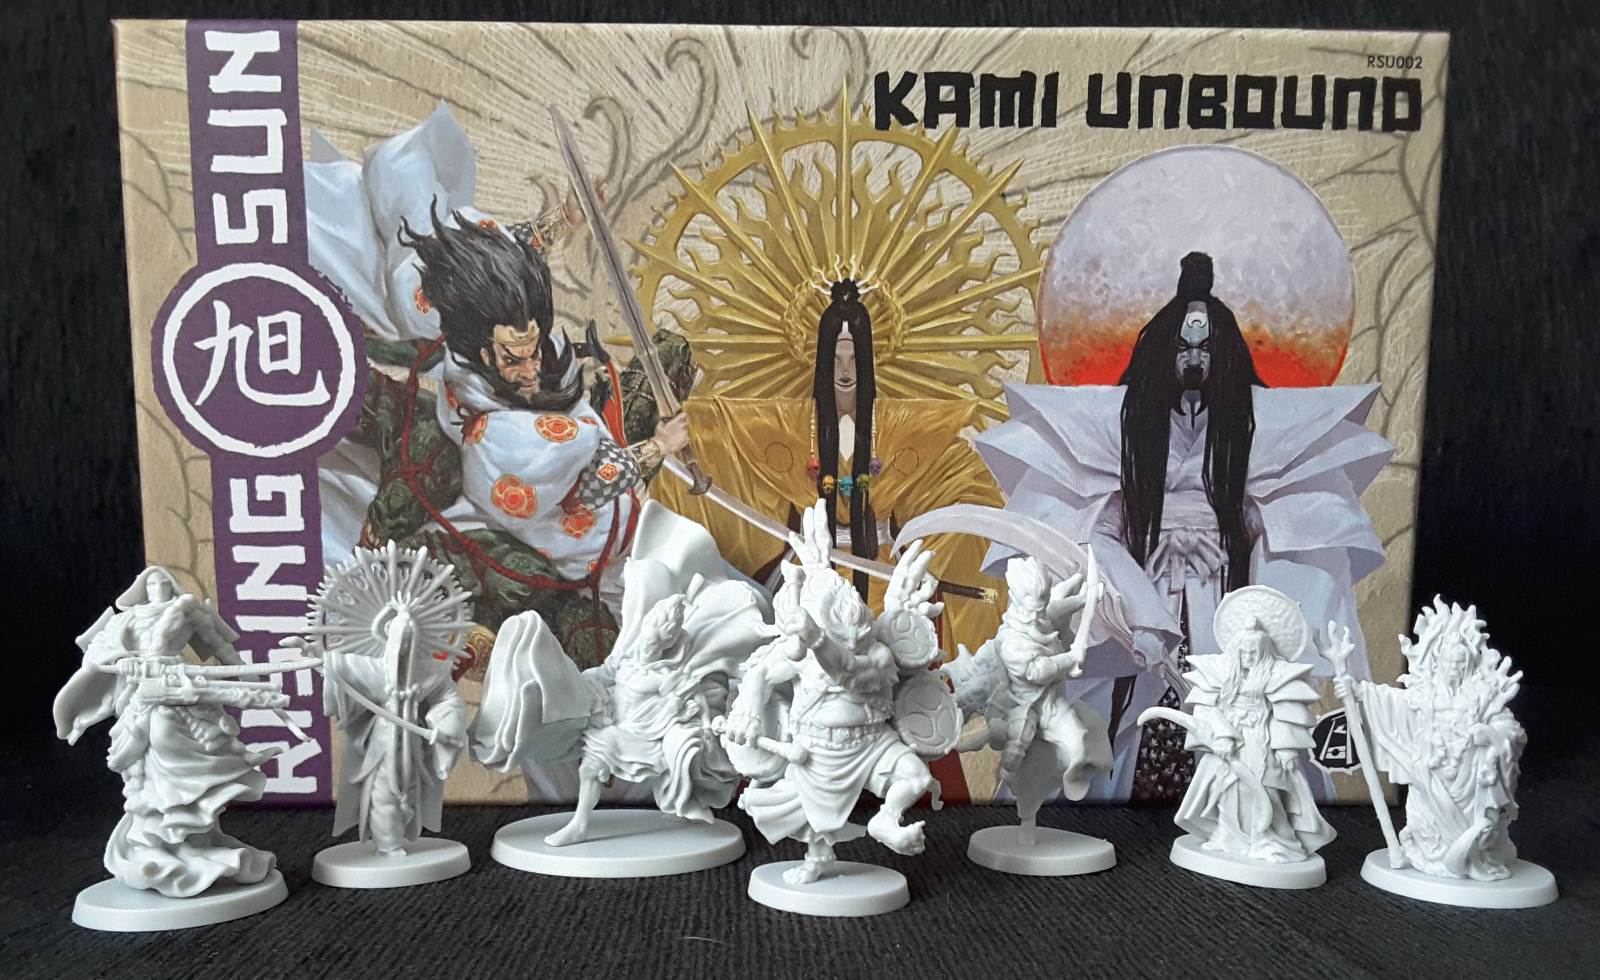 Kami Unbound box and figures